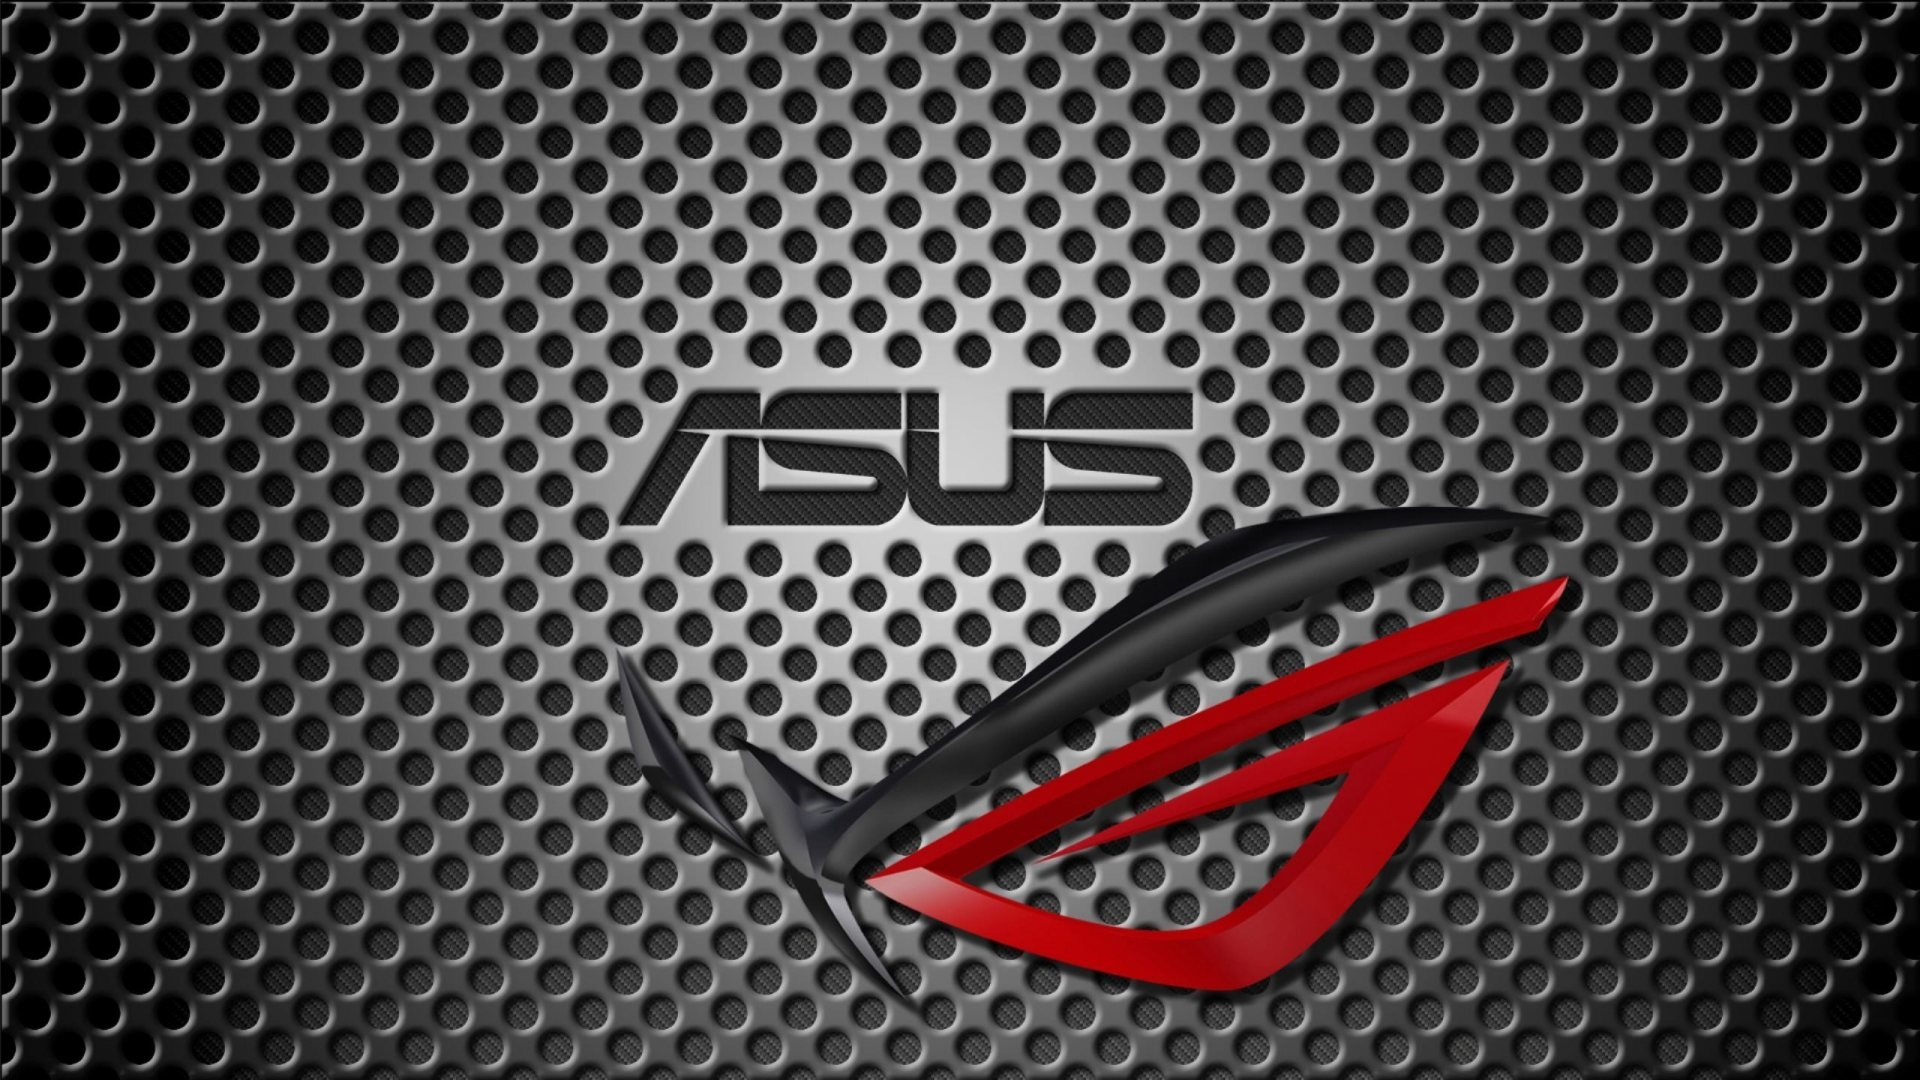 Asus Wallpaper Full HD Desktop Wallpapers 1080p 1920x1080